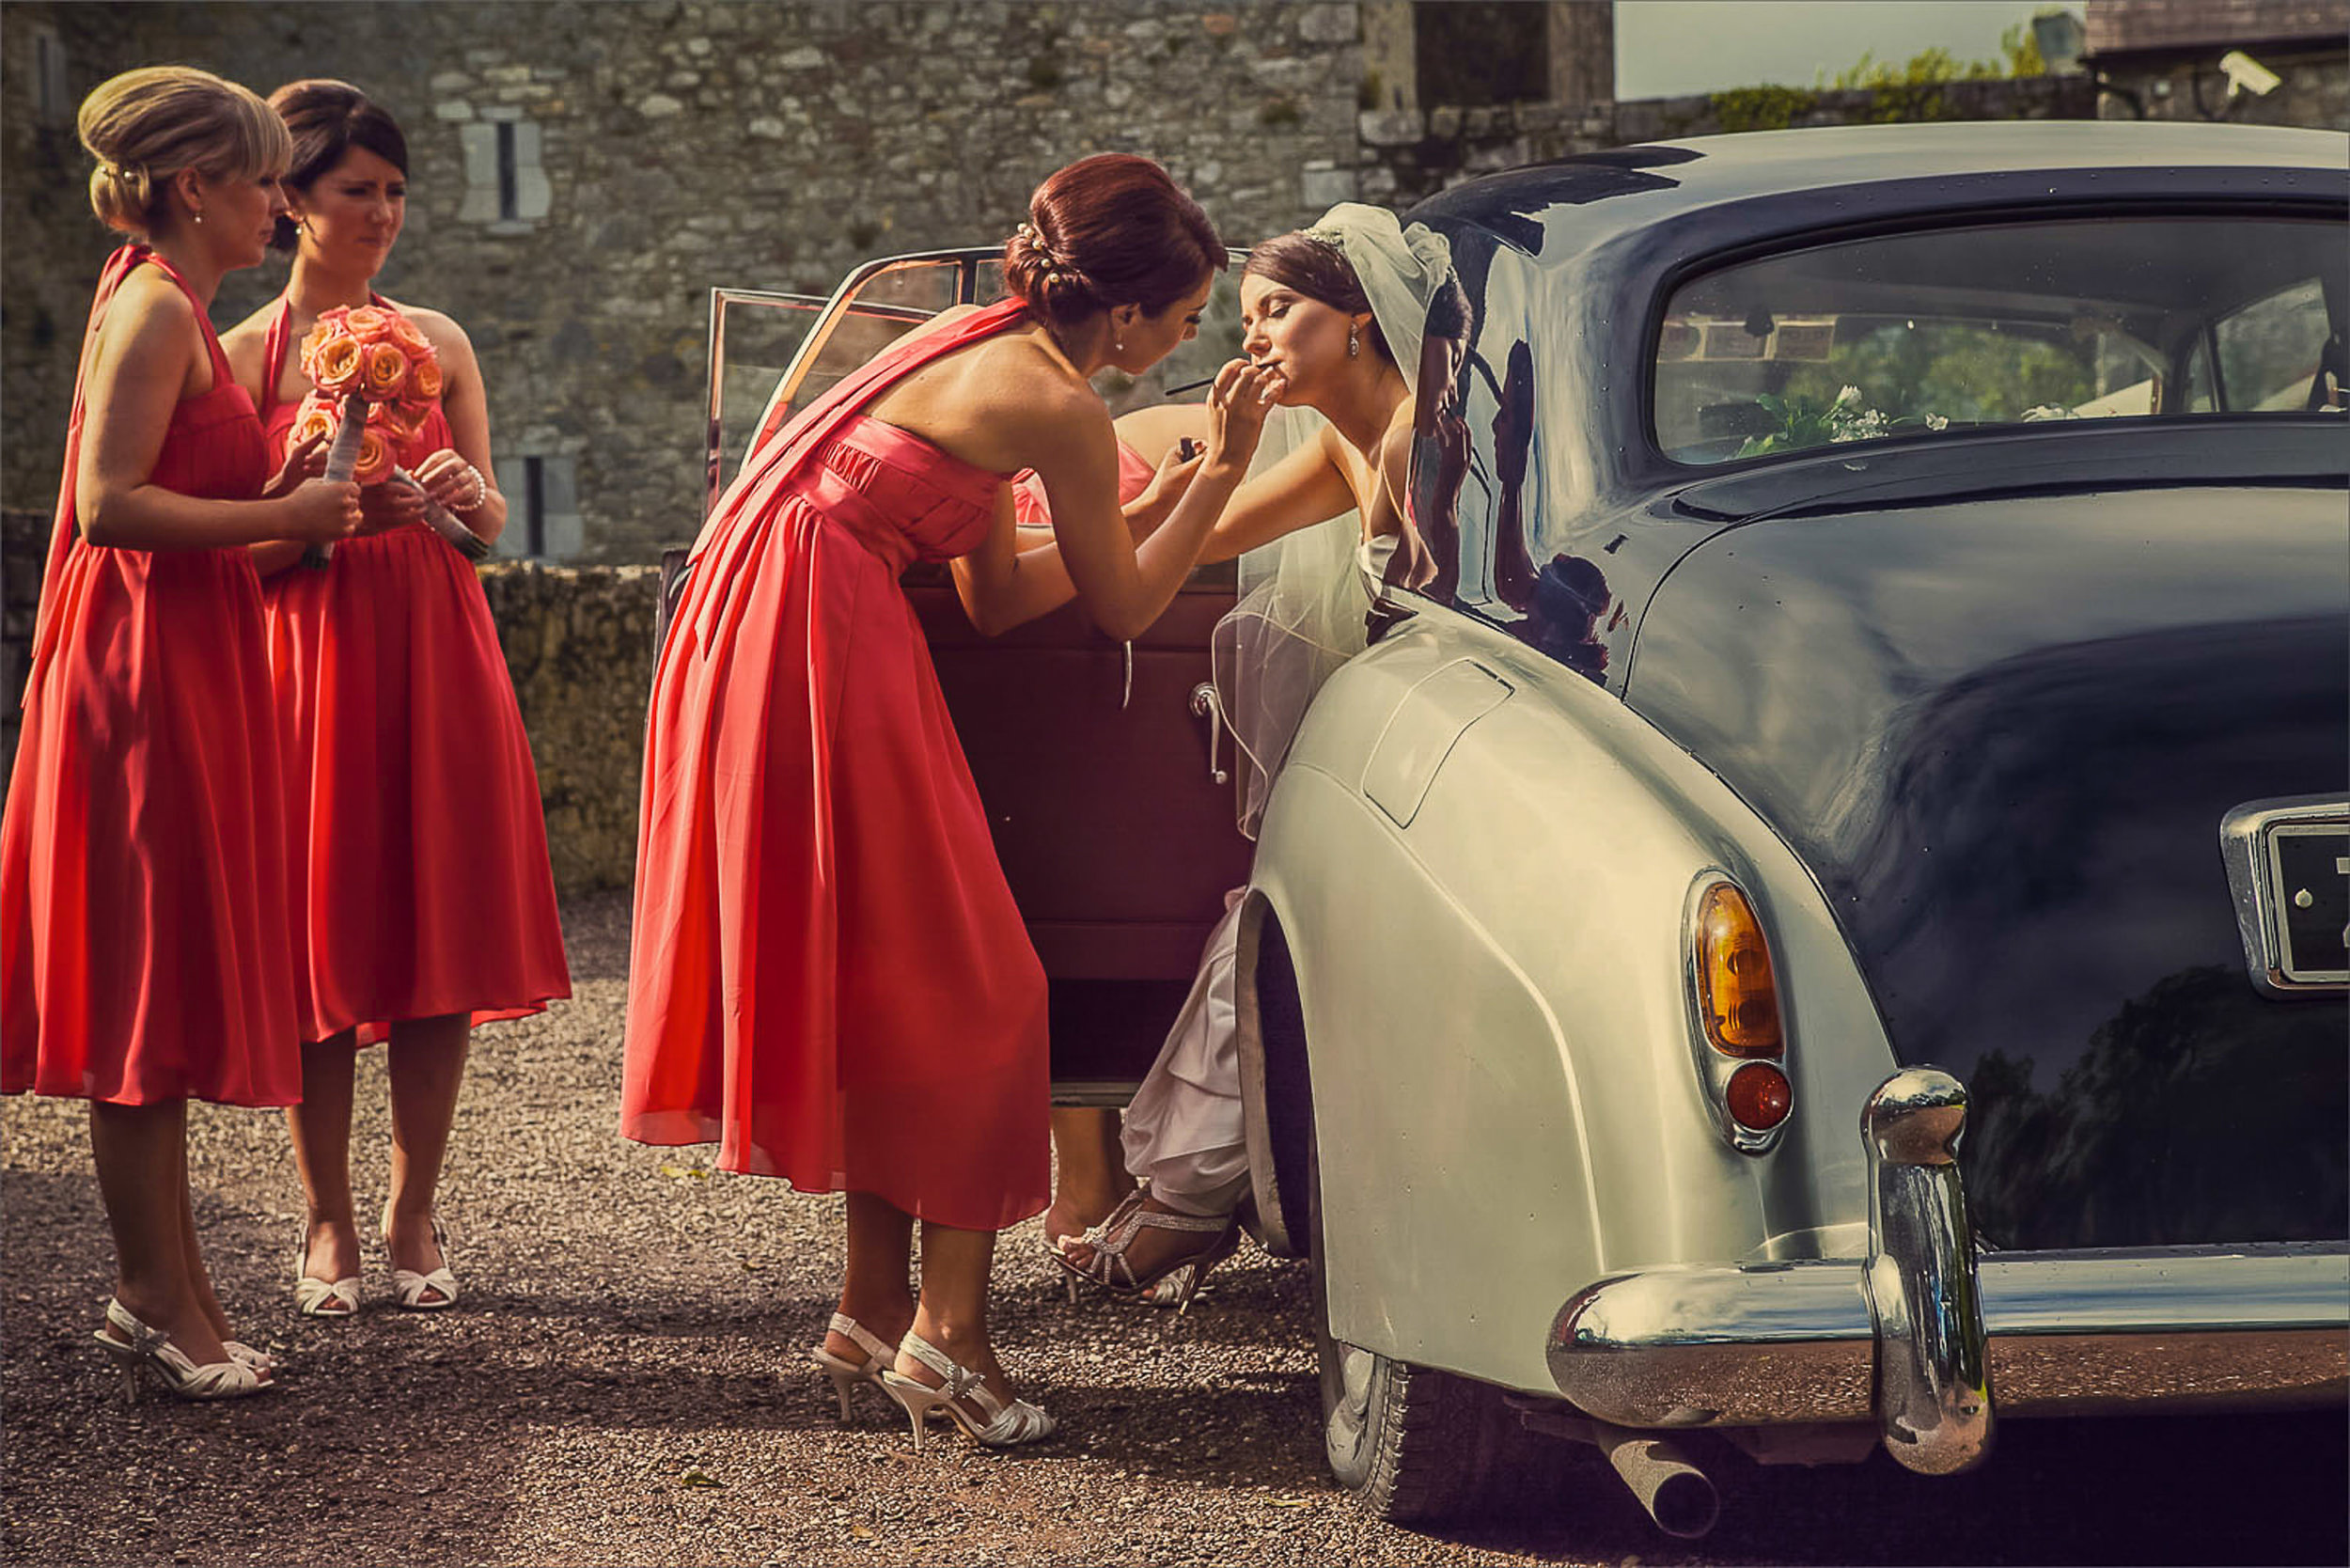 Vintage Wedding Car - Wedding photography in Cork Ireland by David Casey. Bride in white wedding dress with bridesmaids in colourful bridesmaids dresses